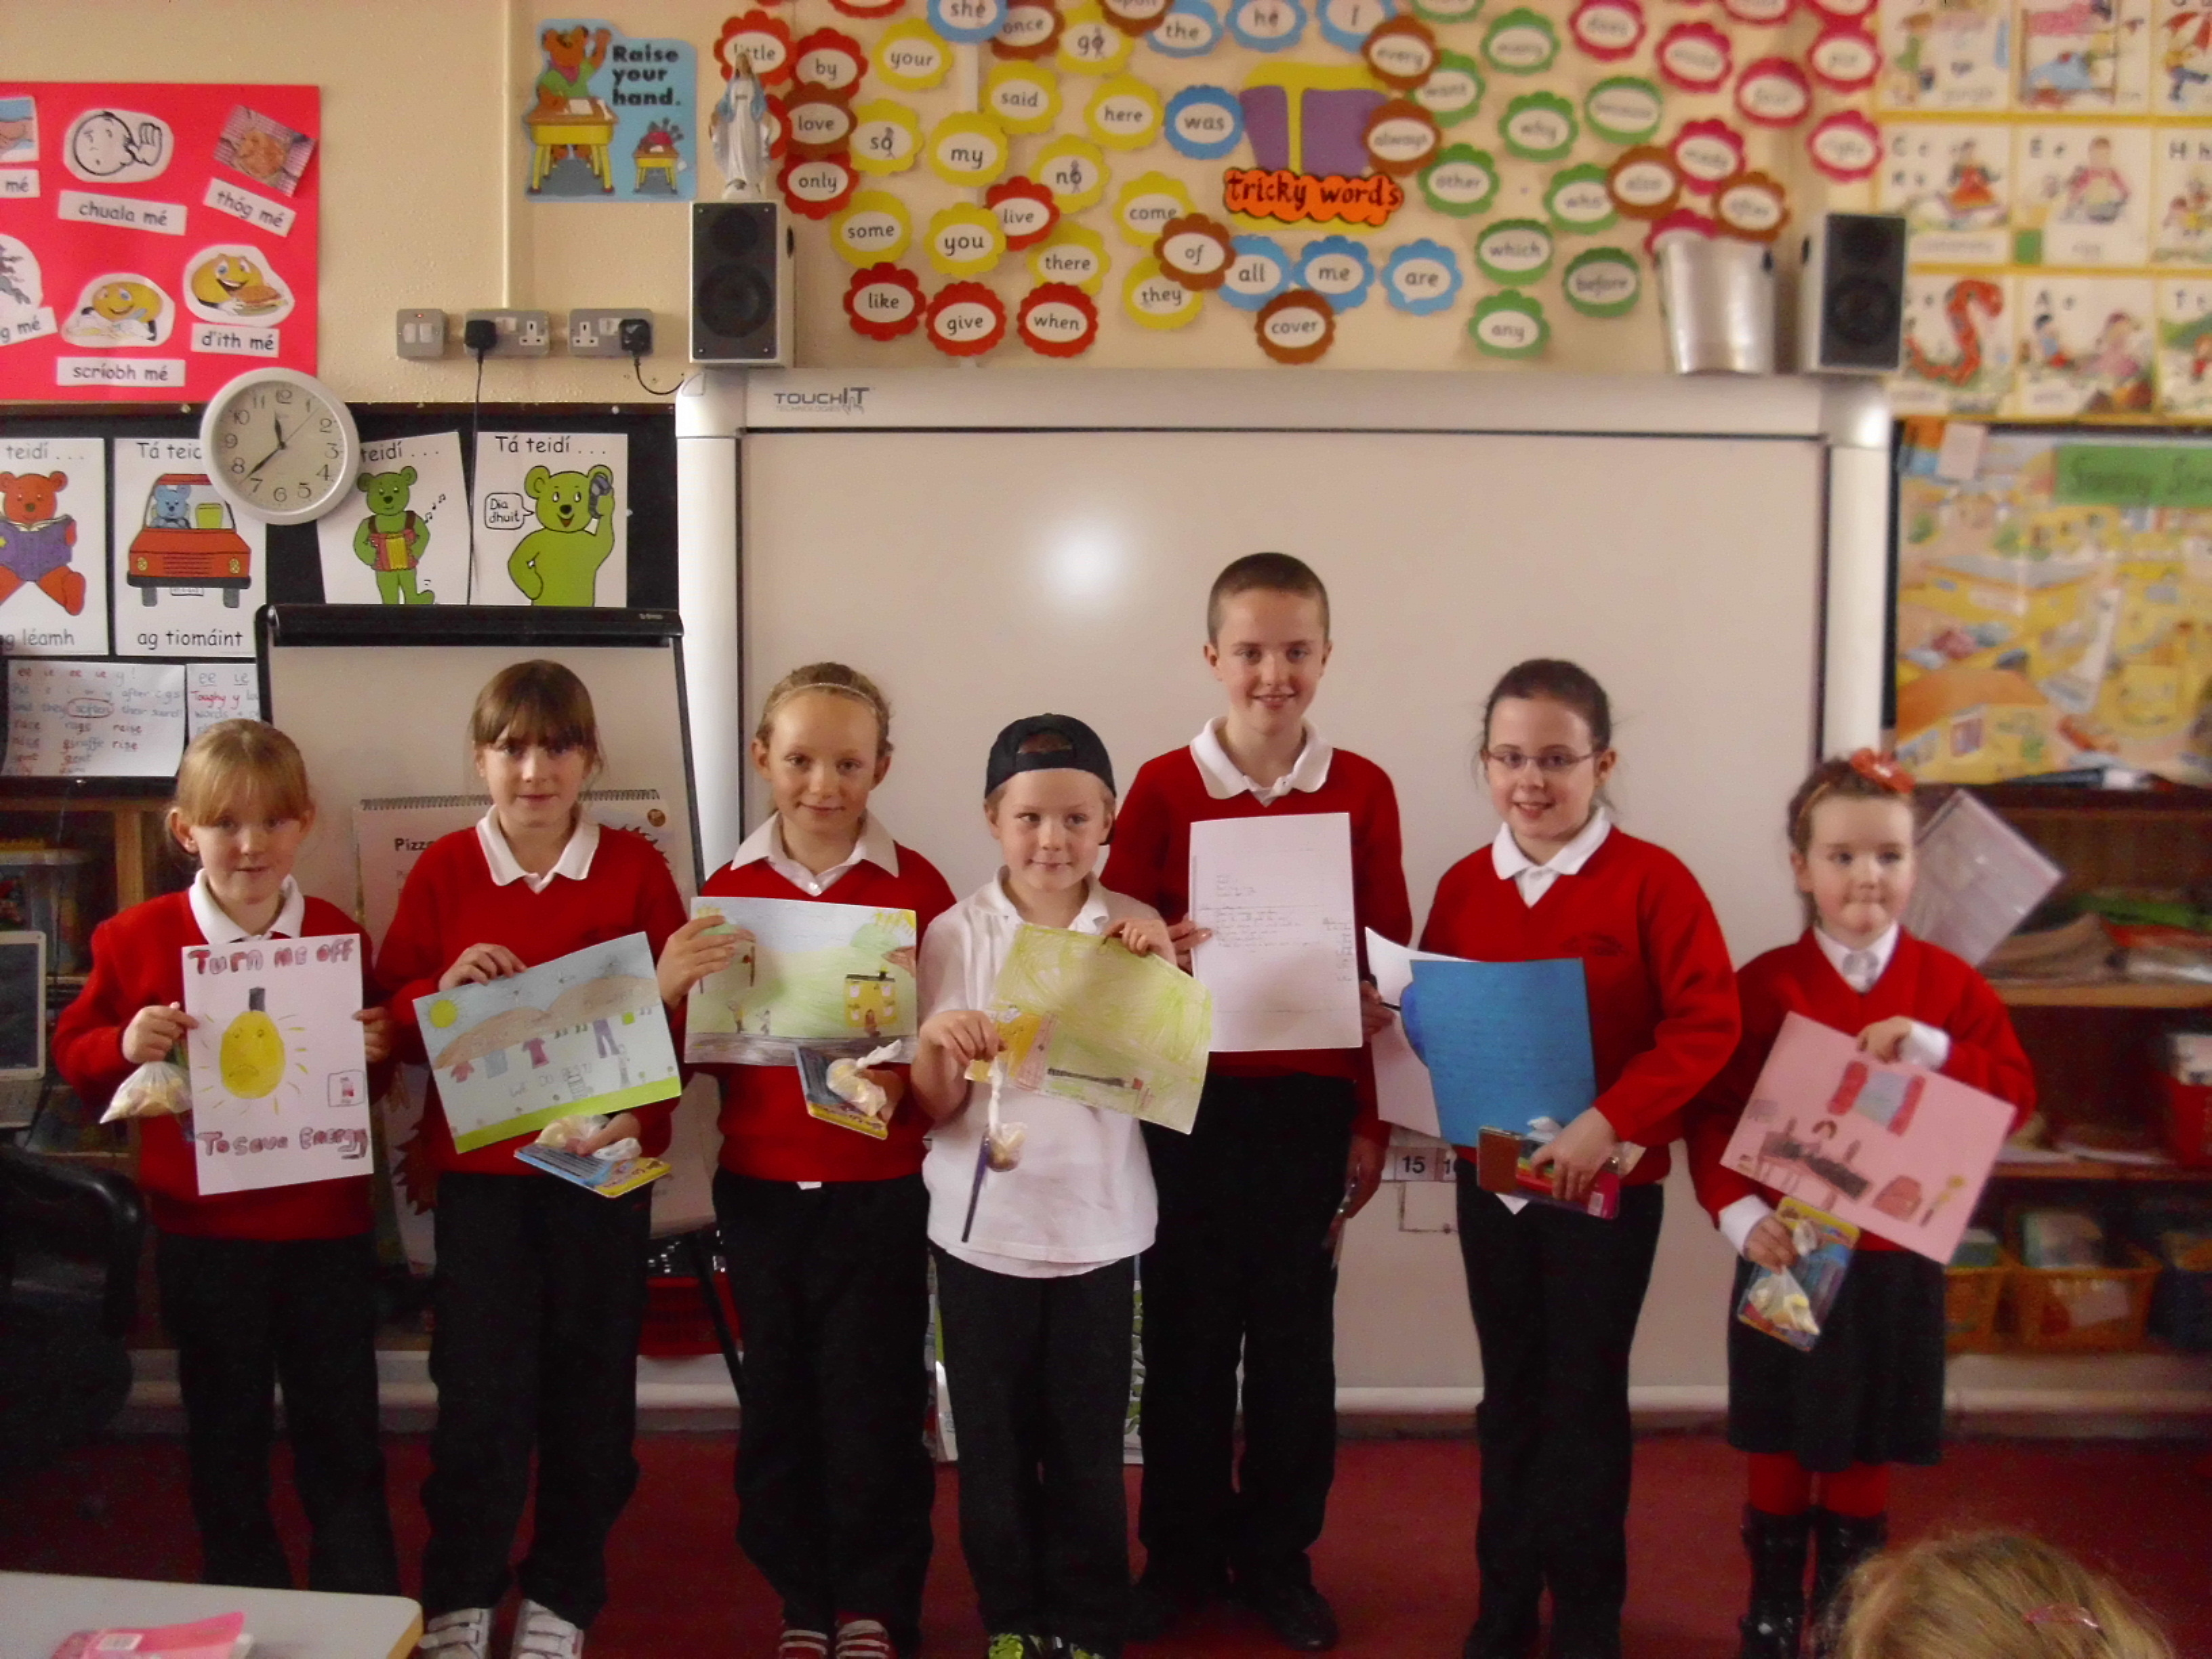 Prizewinners in the saving energy rap and poster competition